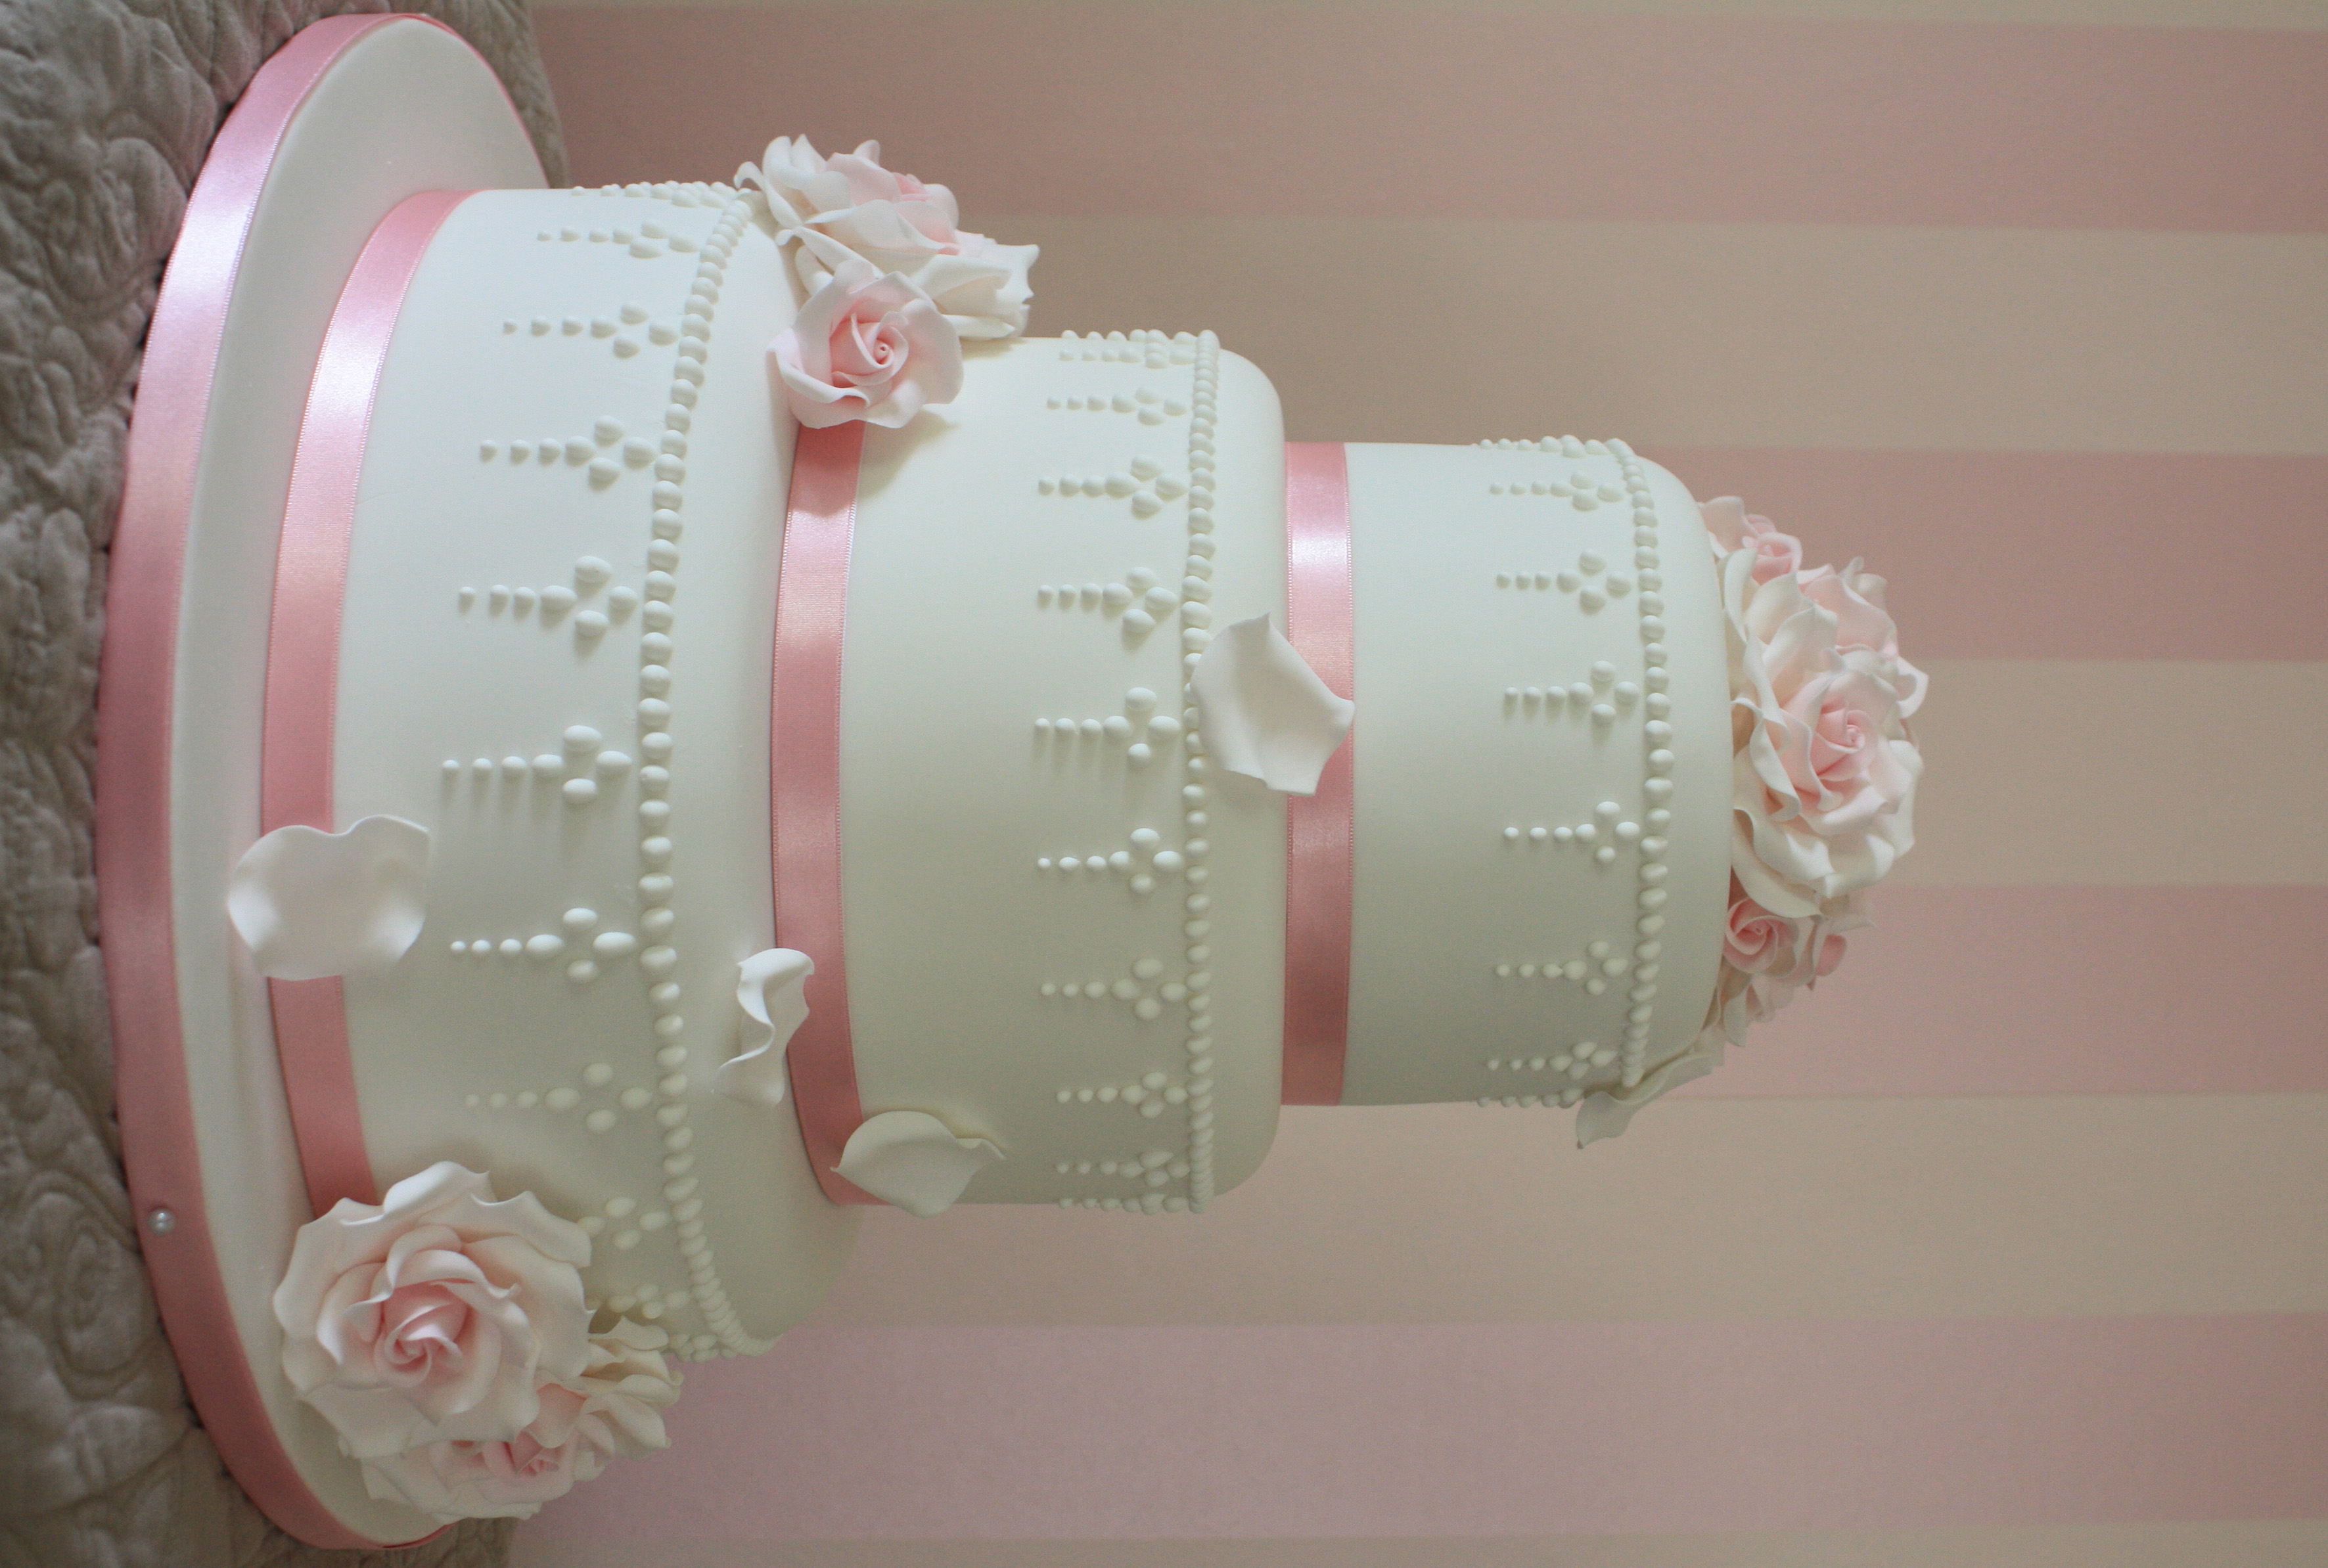 The most beautiful wedding cakes Part II